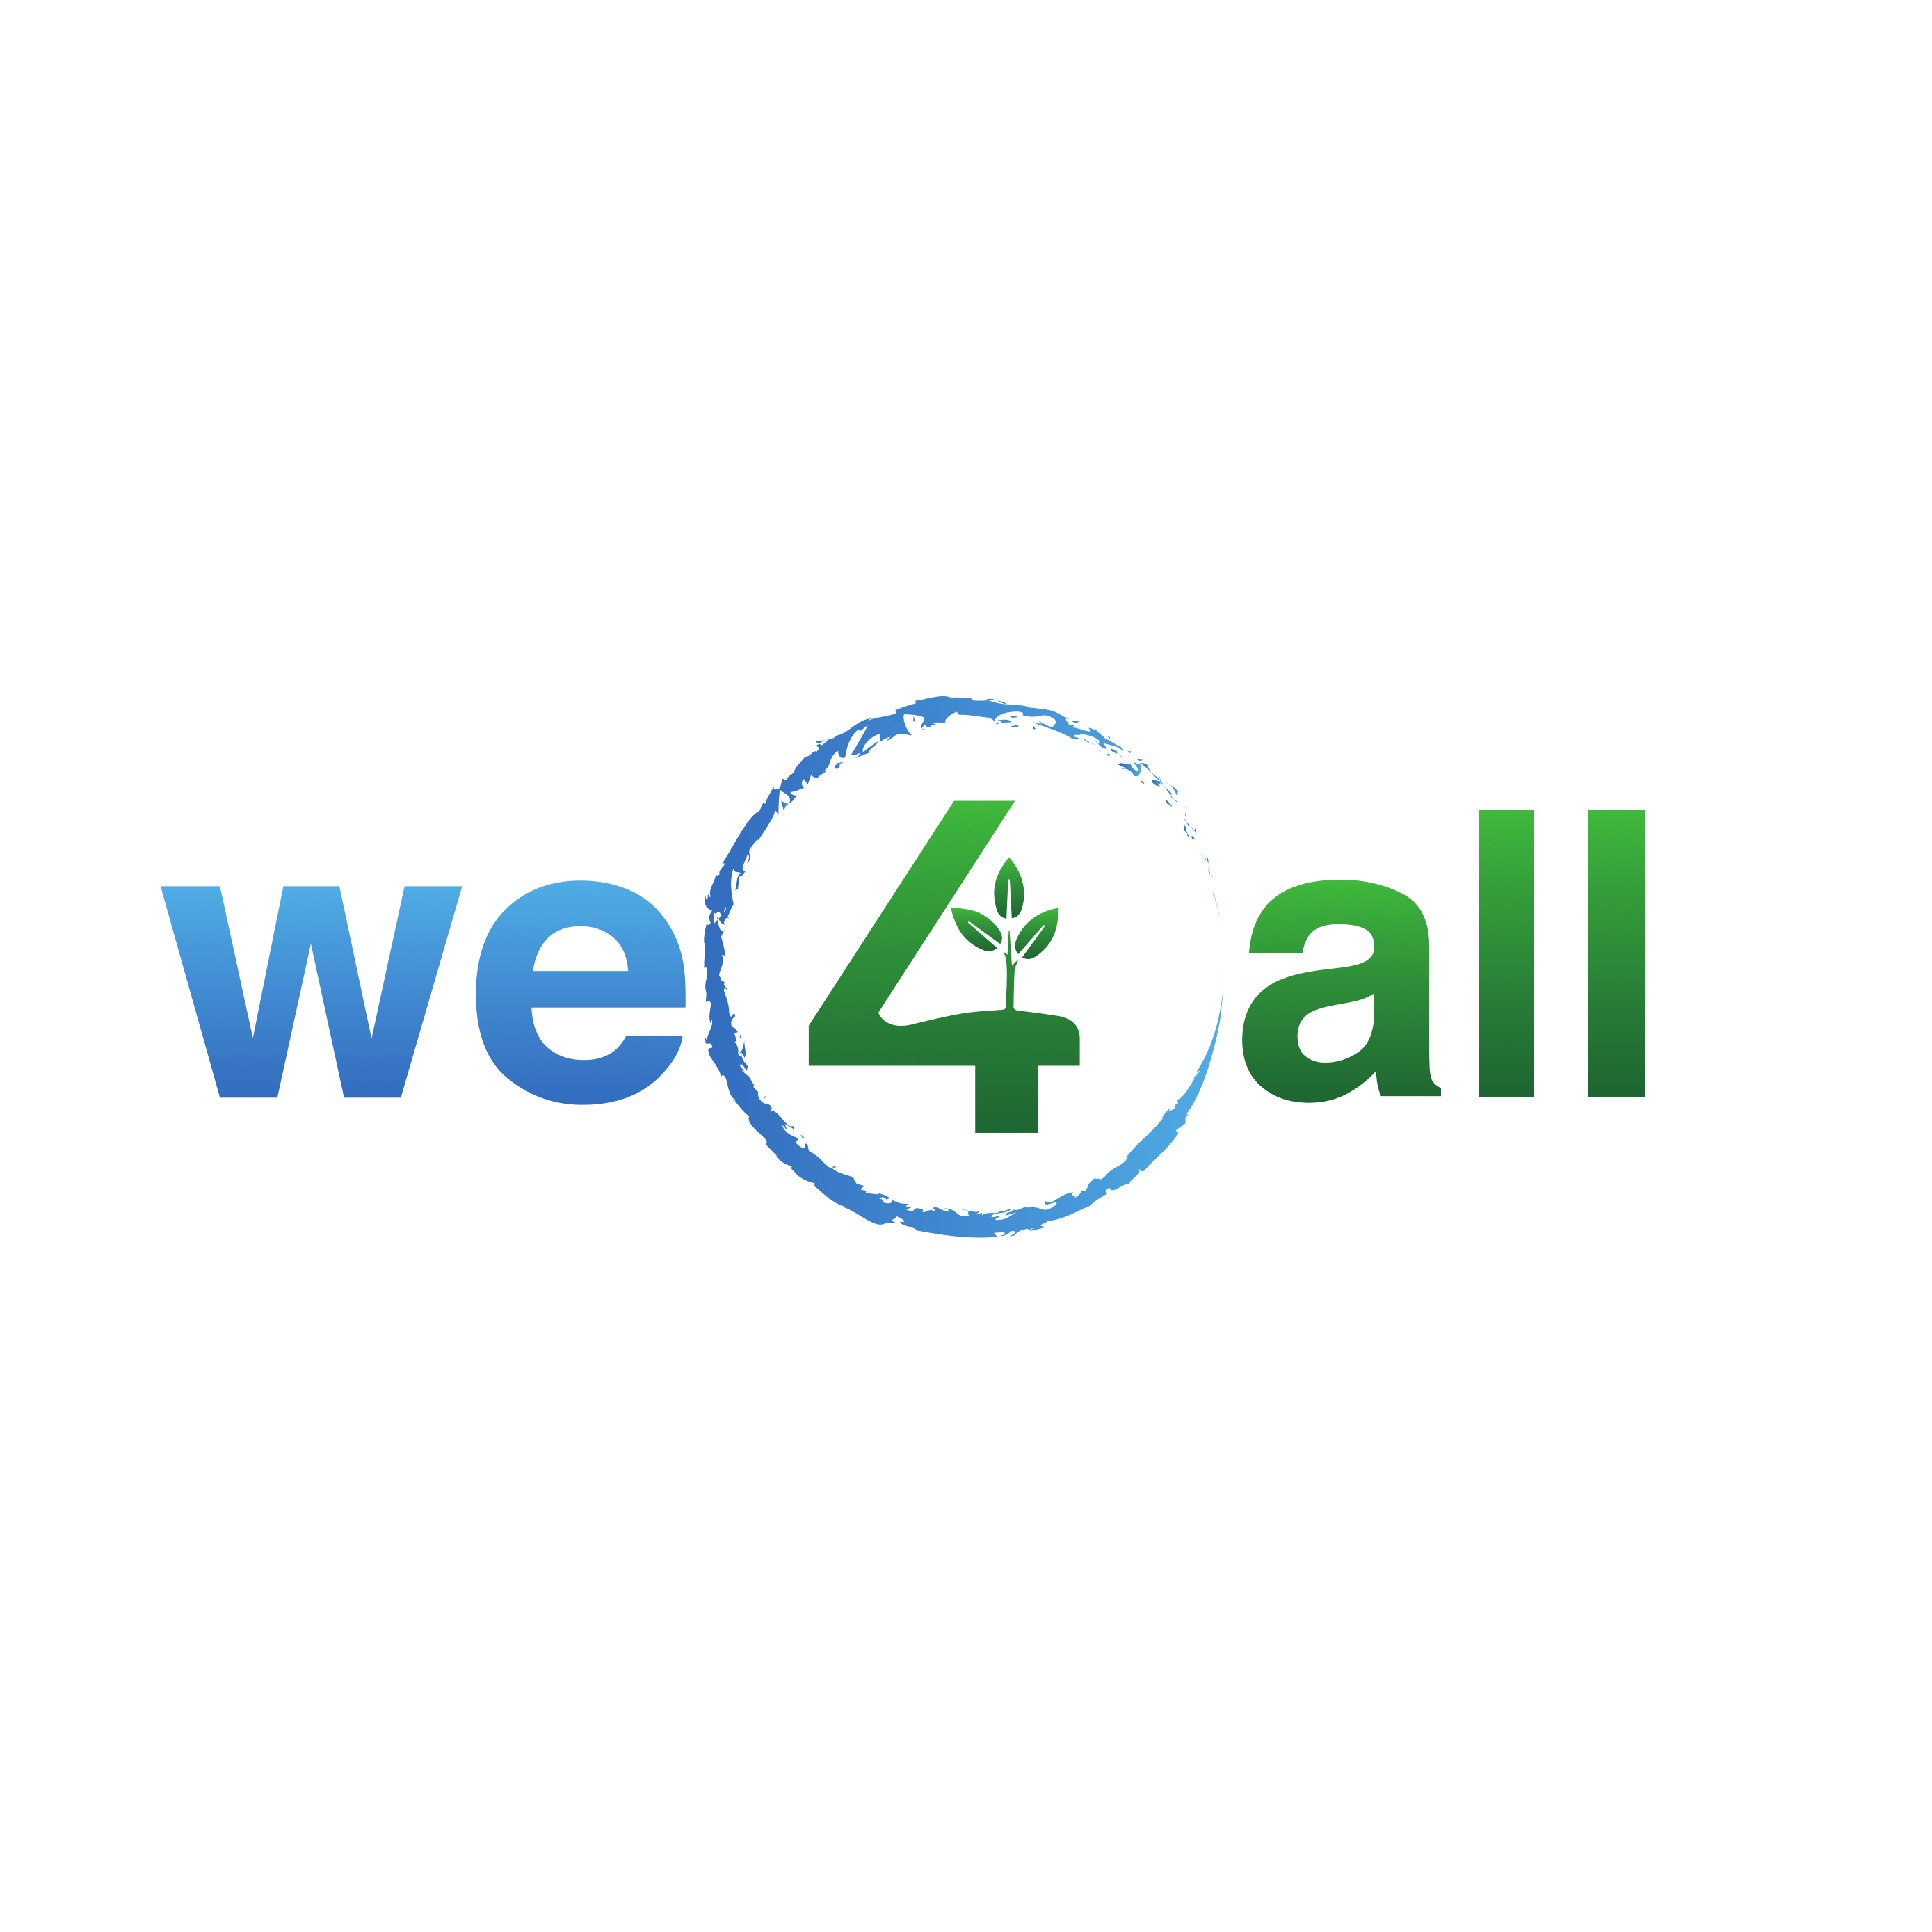 We4all